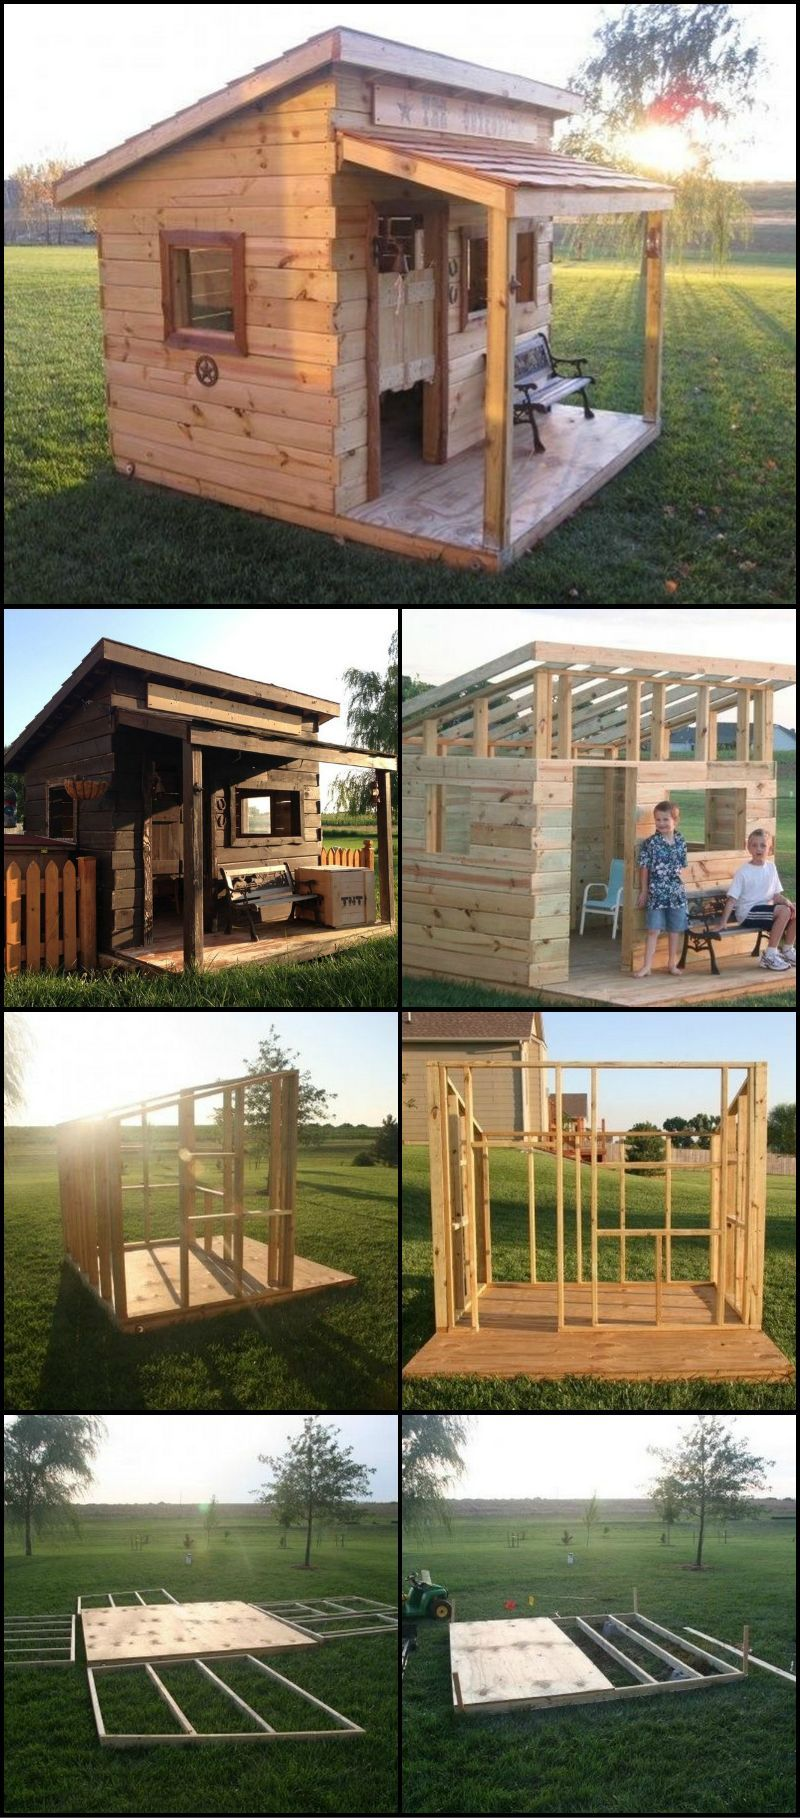 How To Build A Cubby House From Reclaimed Fence Palings